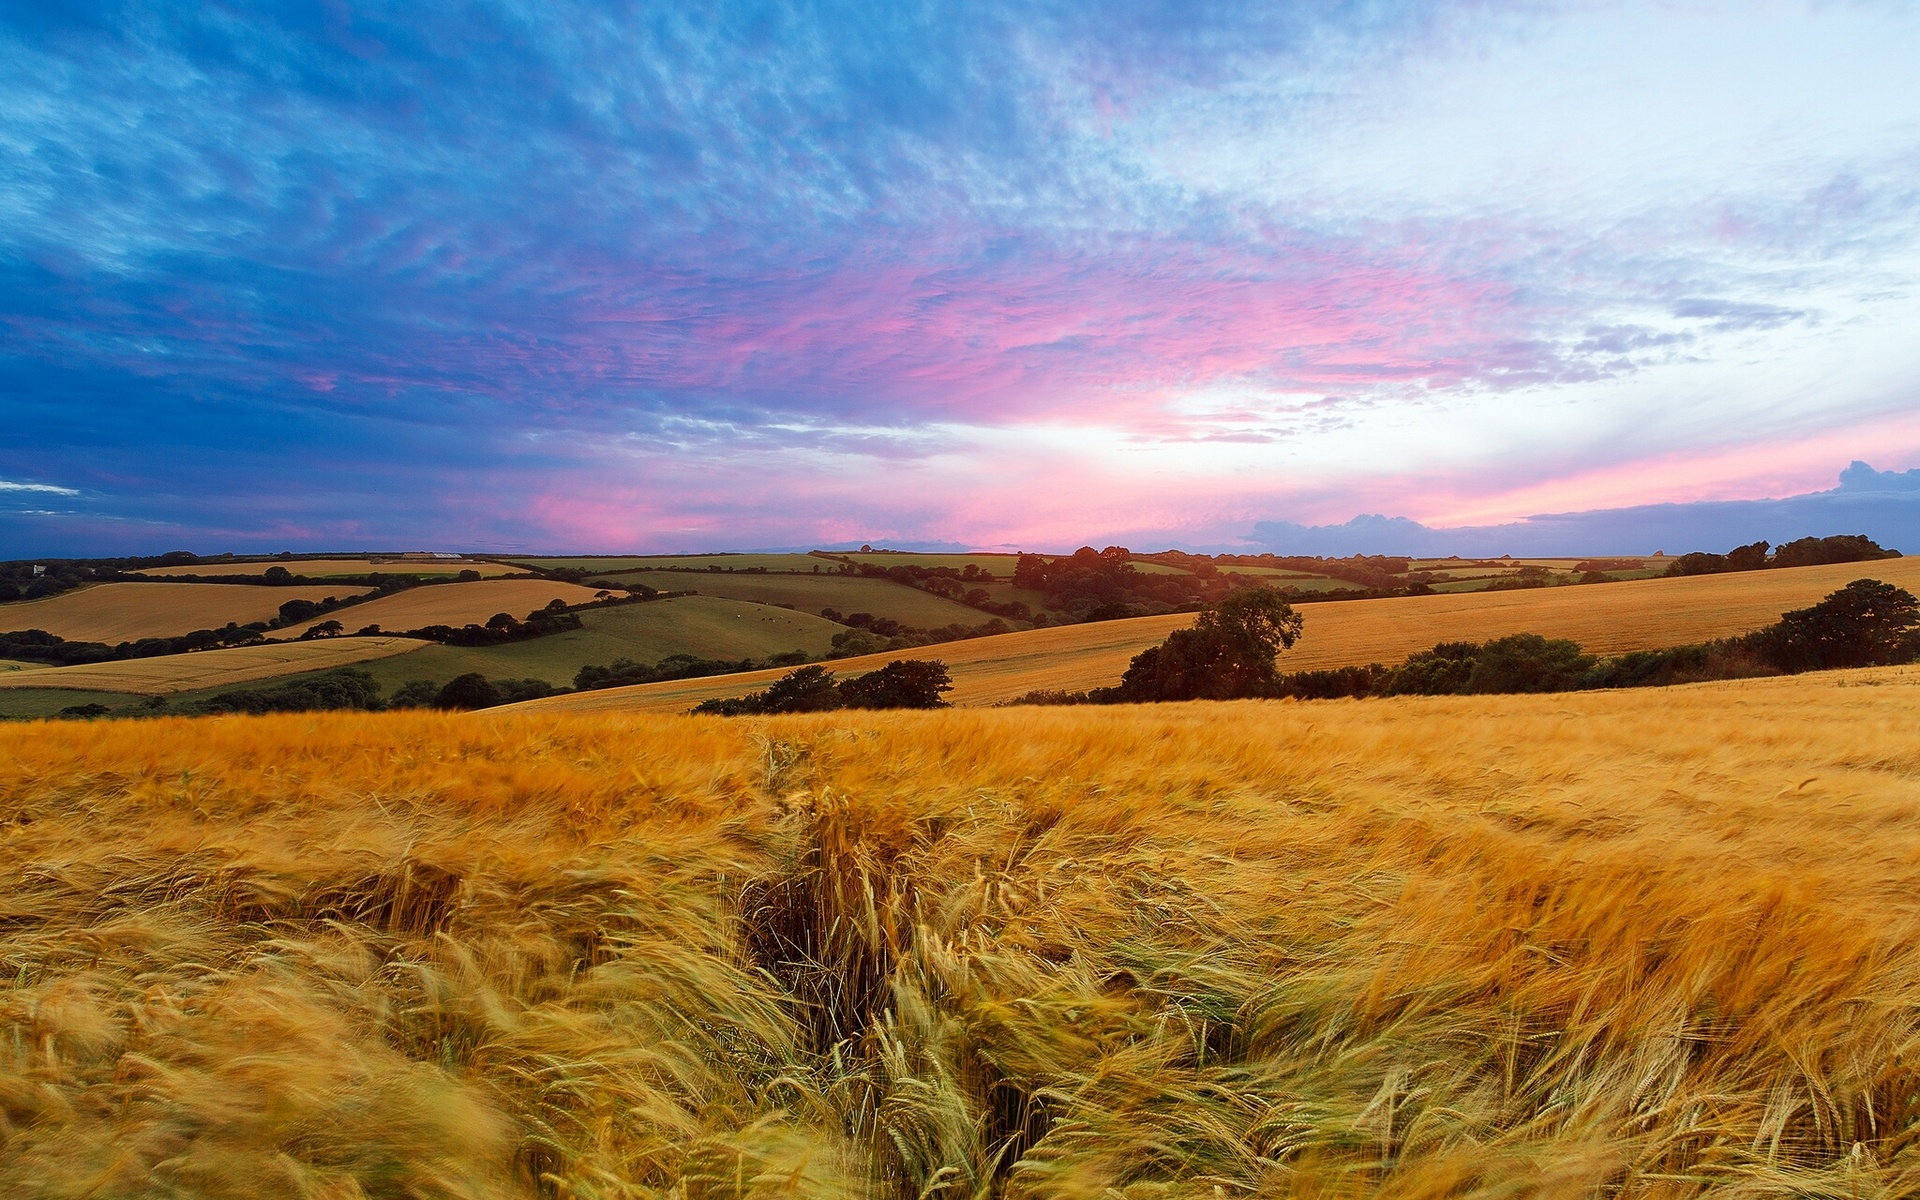 Bing Animated Wallpaper Sunset Field England Wallpapers Sunset Field England